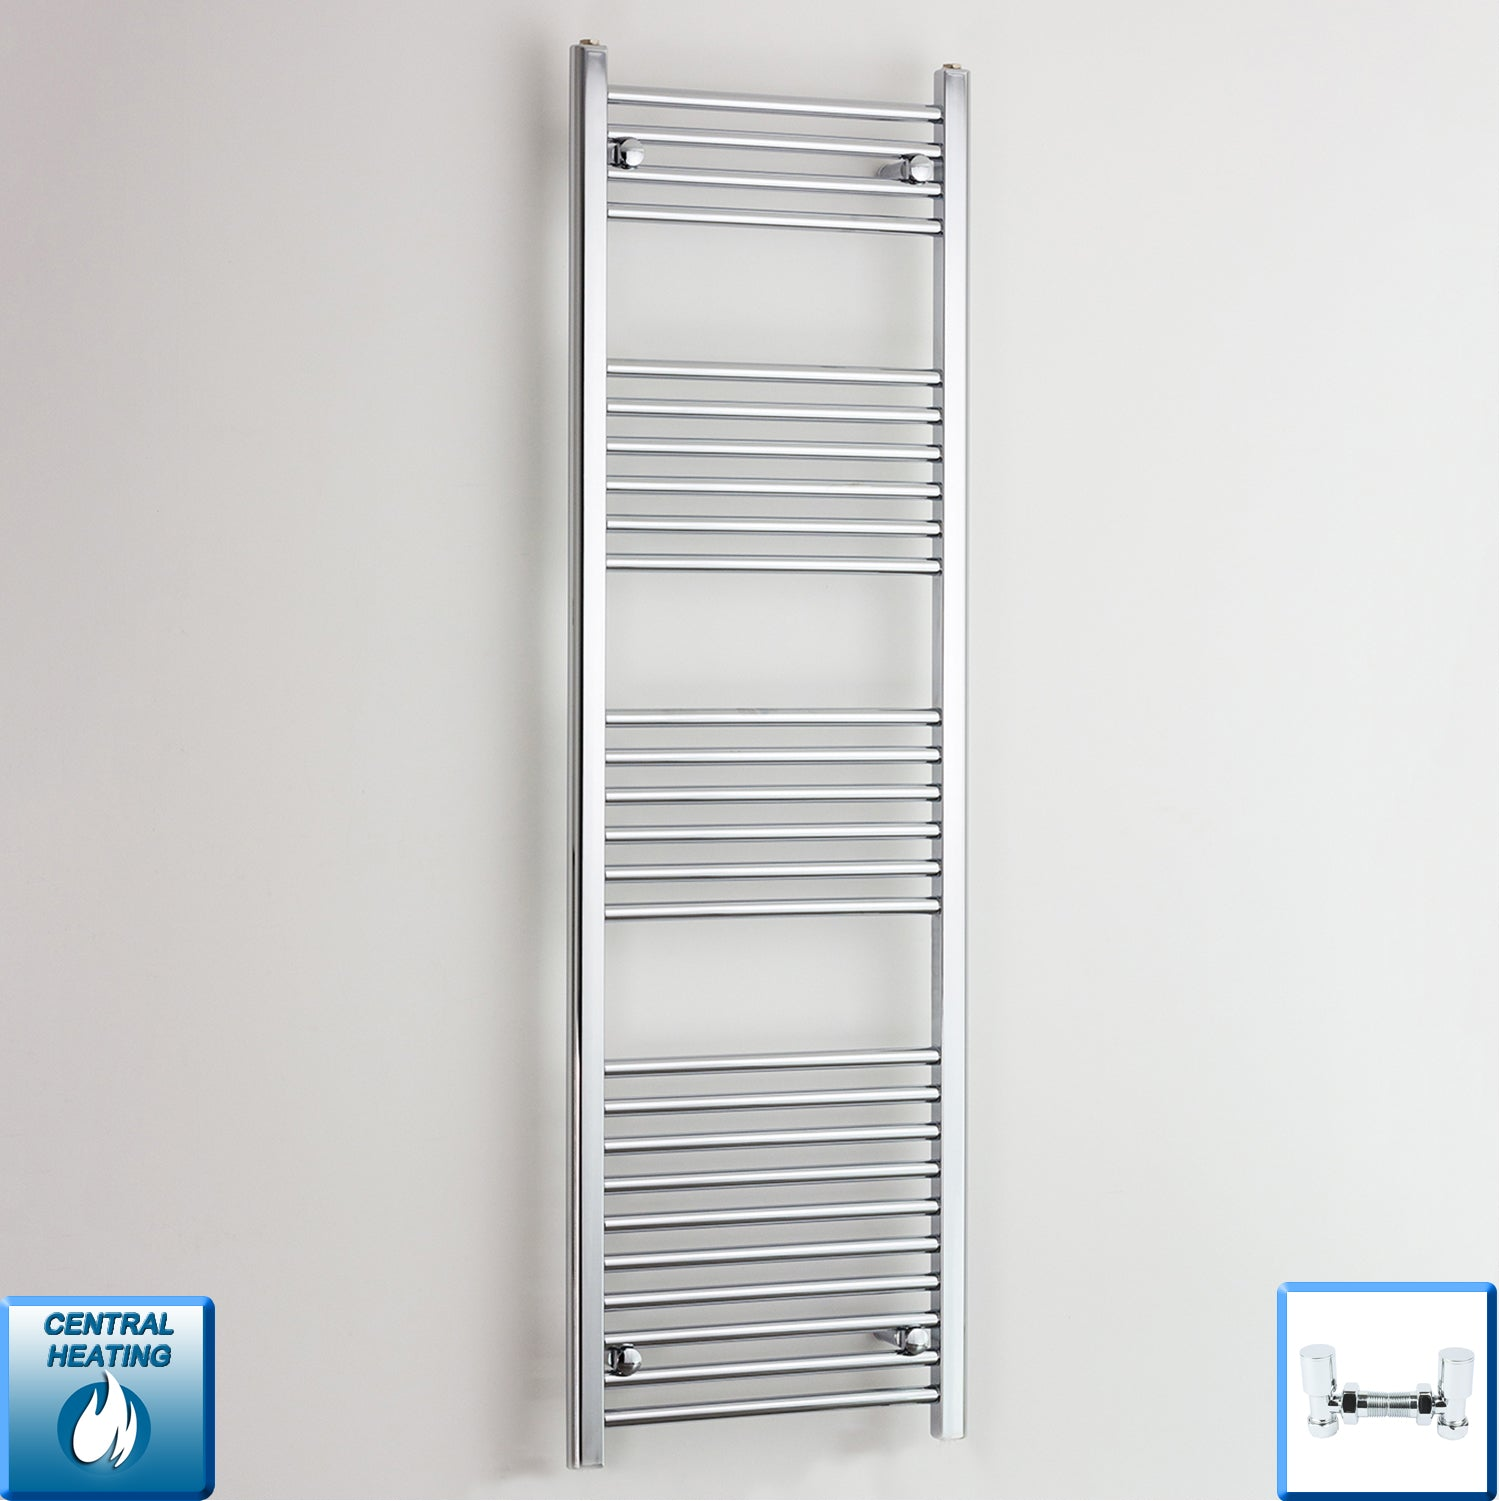 400mm Wide 1600mm High Straight Chrome Heated Towel Rail Radiator HTR,With Angled Valve